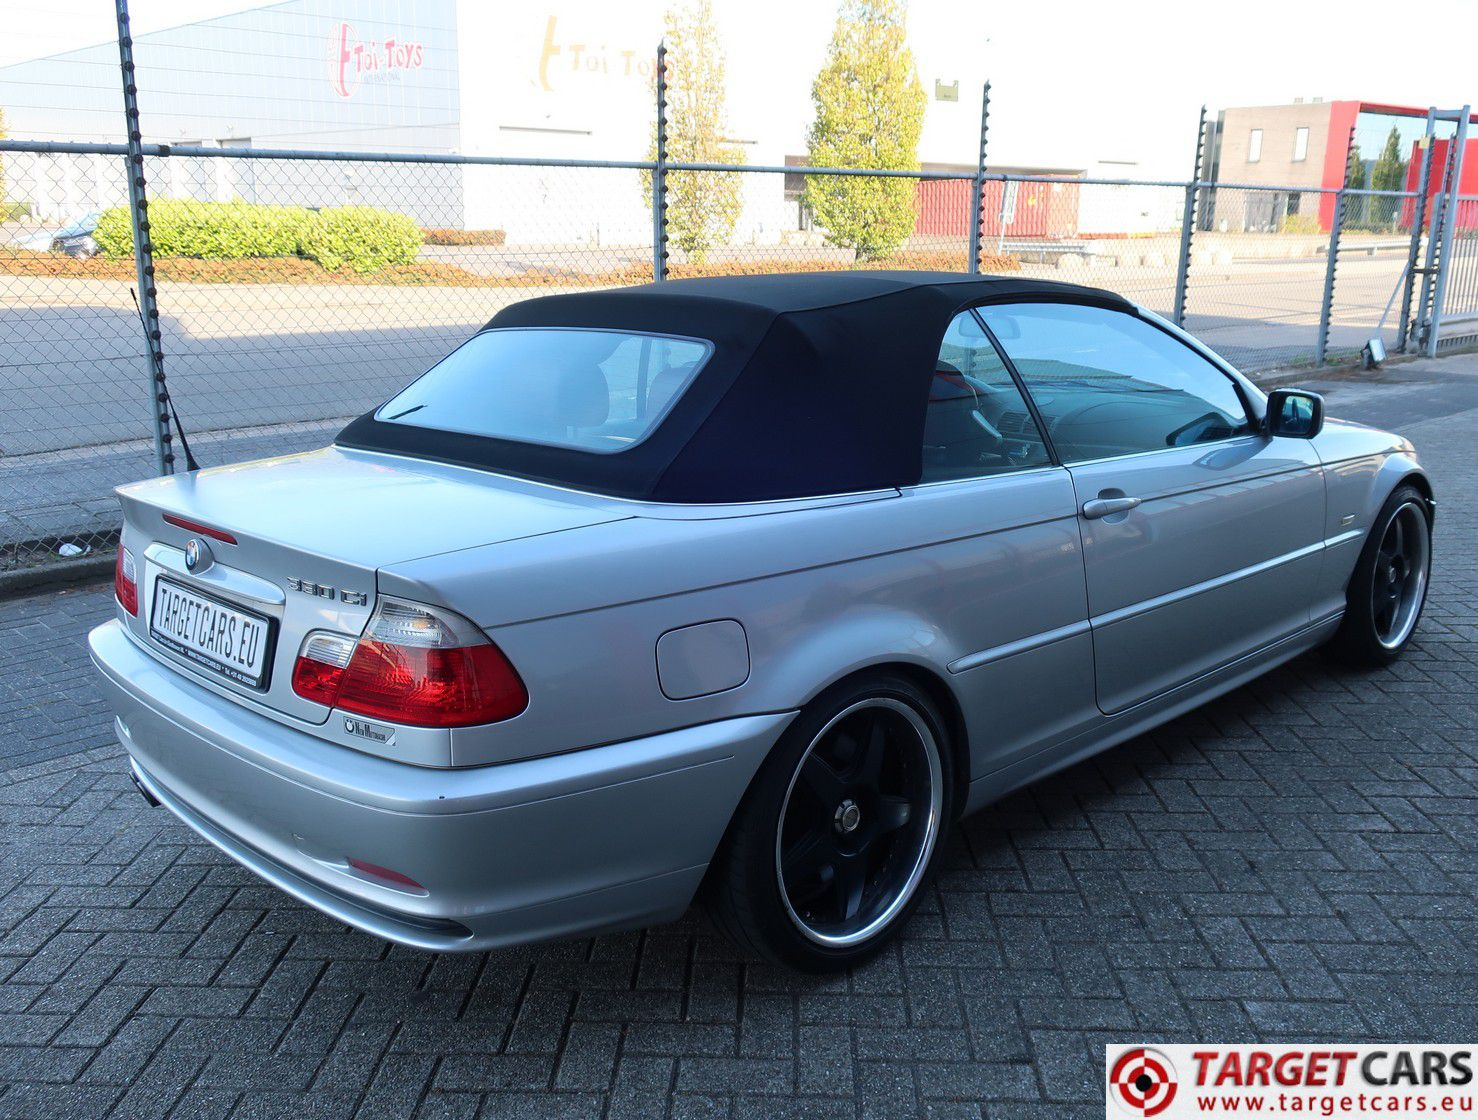 bmw 330ci 3 0l 231hp e46 cabrio aut 11 02 silver 69419km lhd. Black Bedroom Furniture Sets. Home Design Ideas